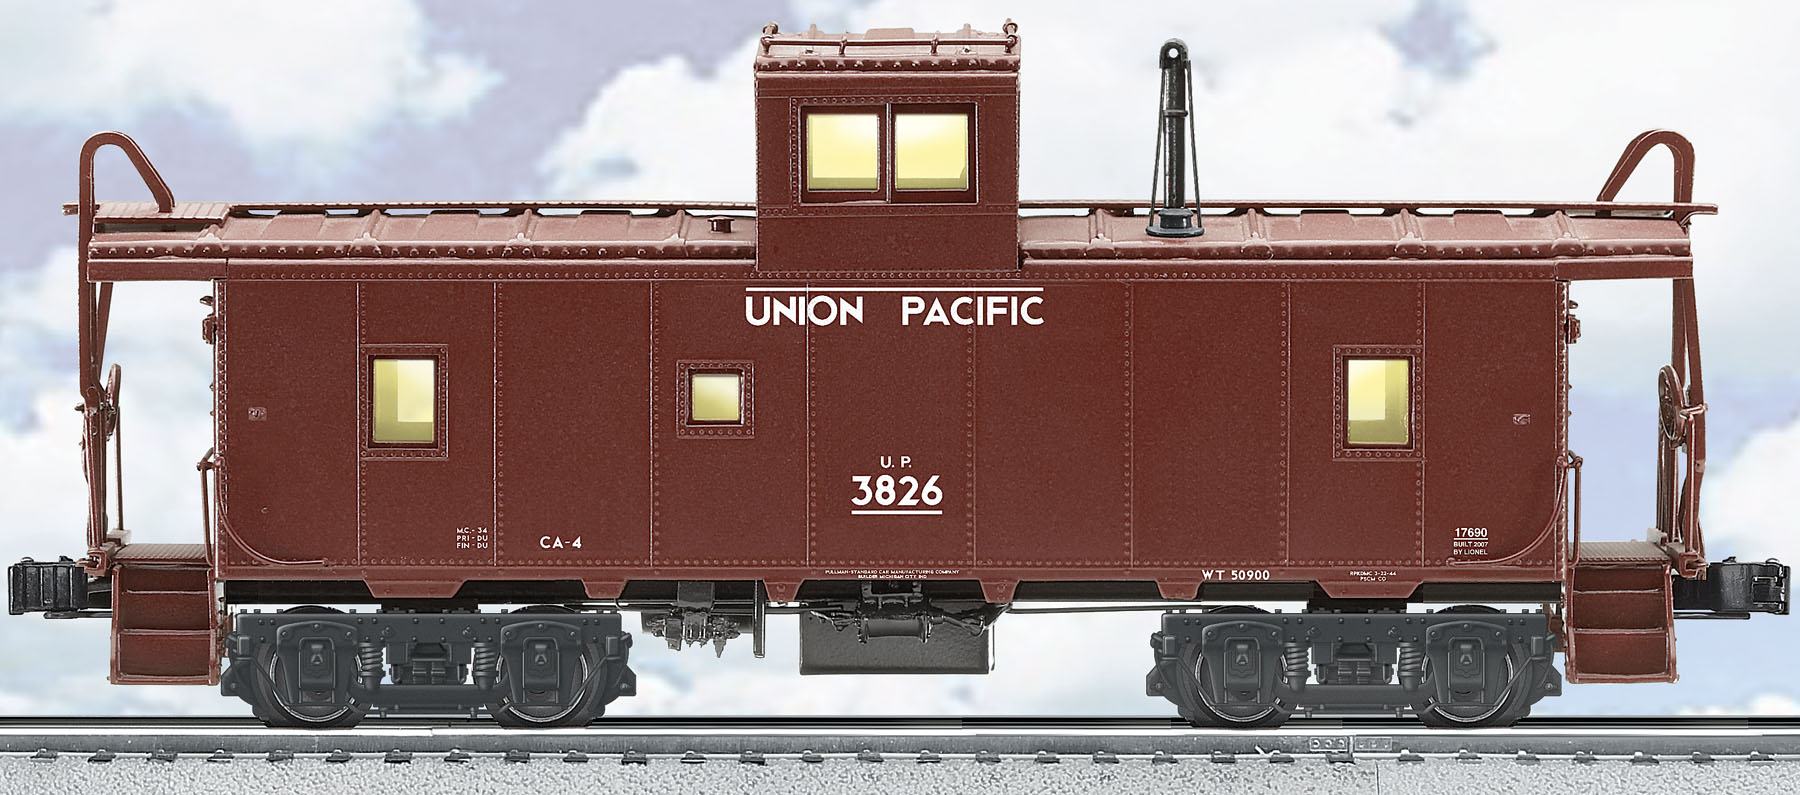 Union Pacific Ca 4 Caboose 3826